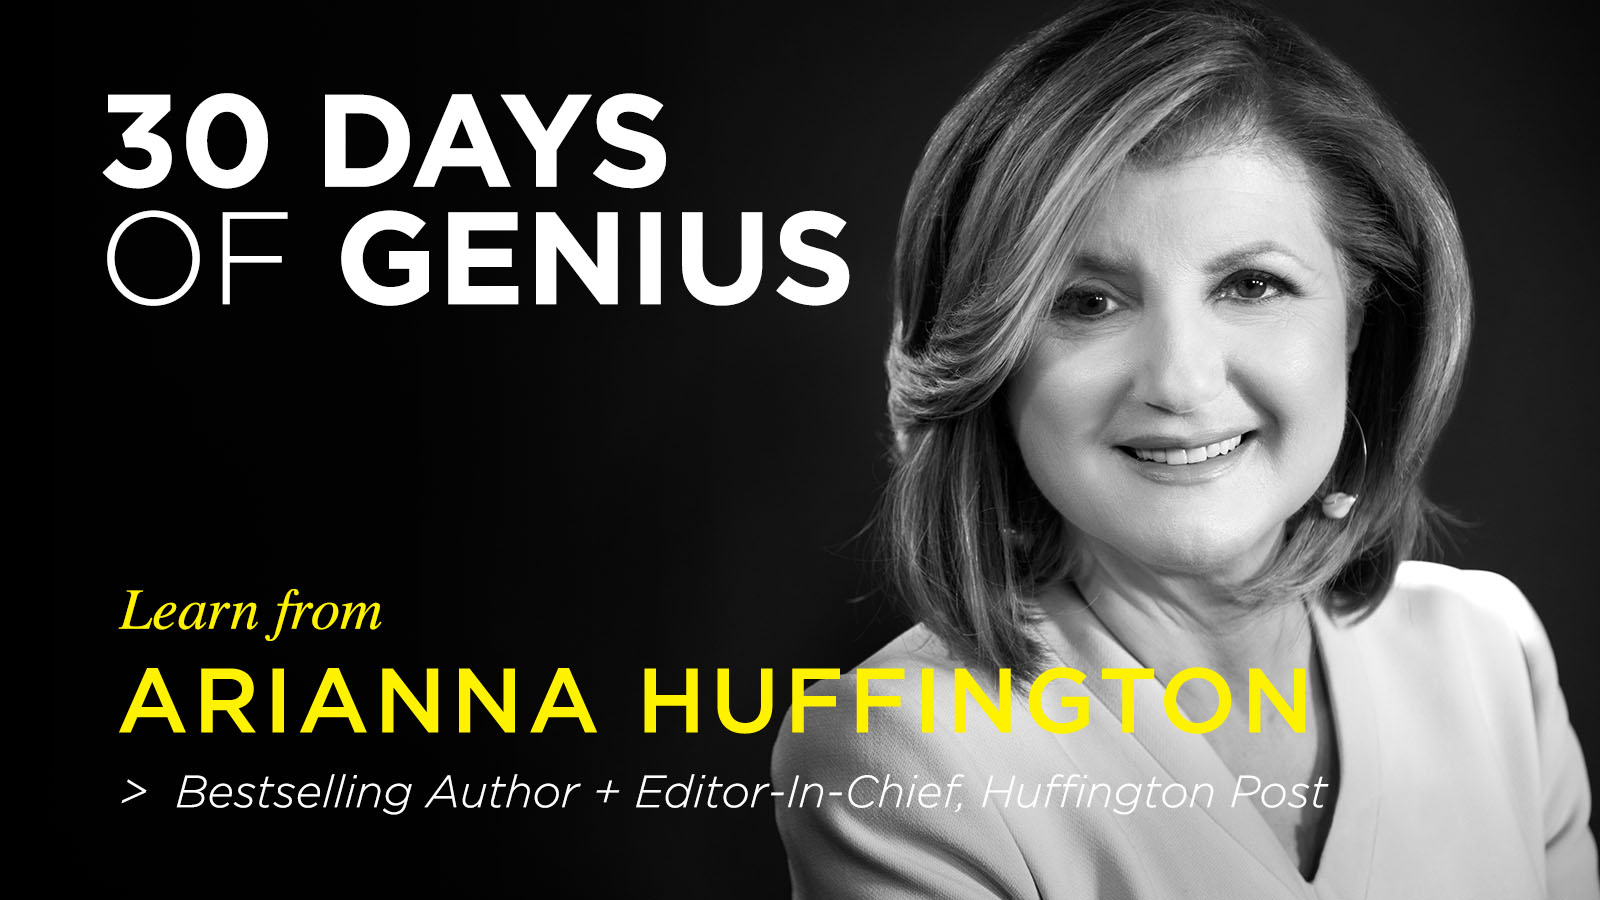 Arianna Huffington: Sleeping Your Way To The Top